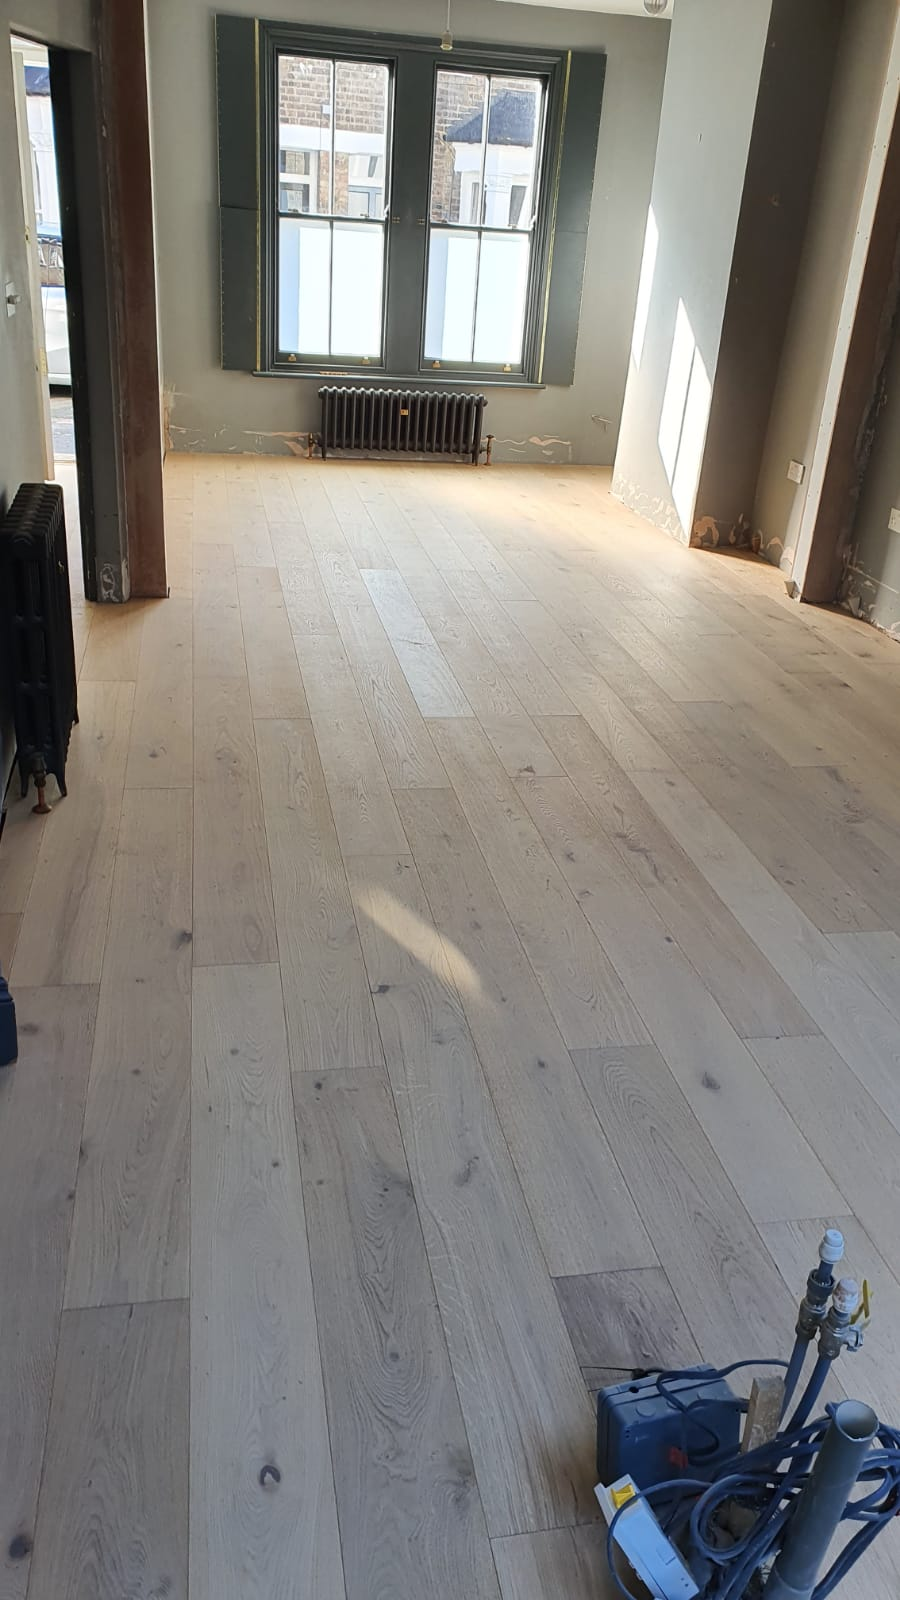 Kersaint Cobb Rustique Nude Wood Flooring 3